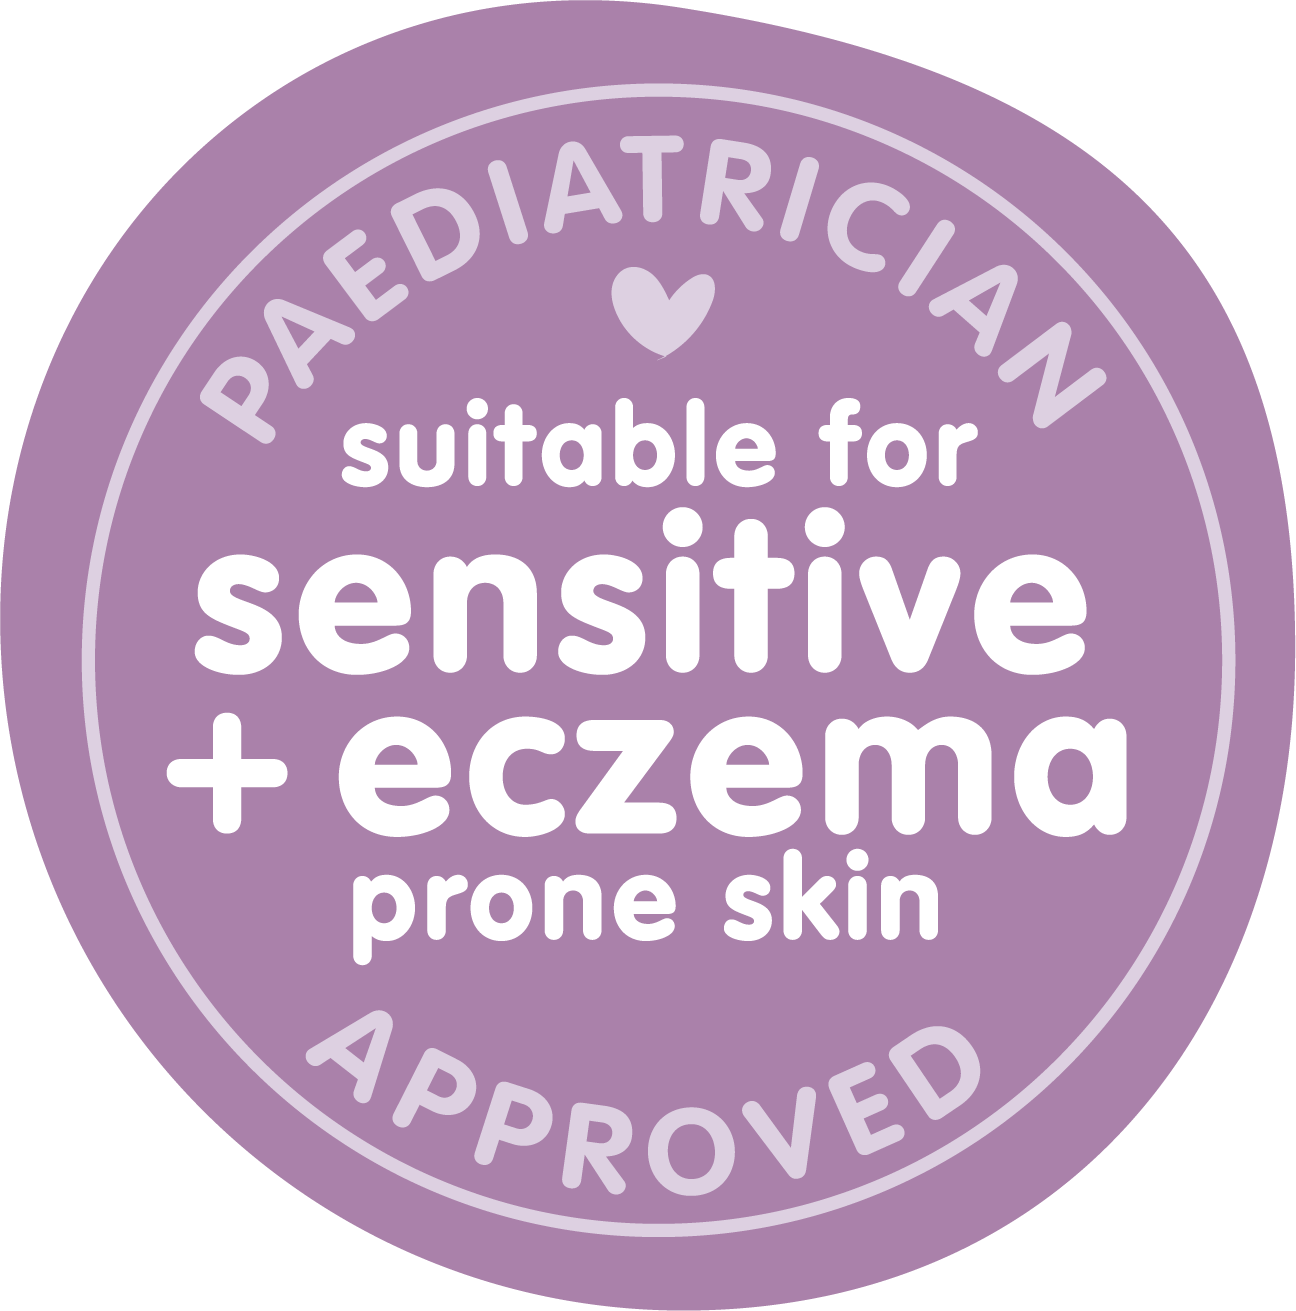 Paediatrician Approved Roundel